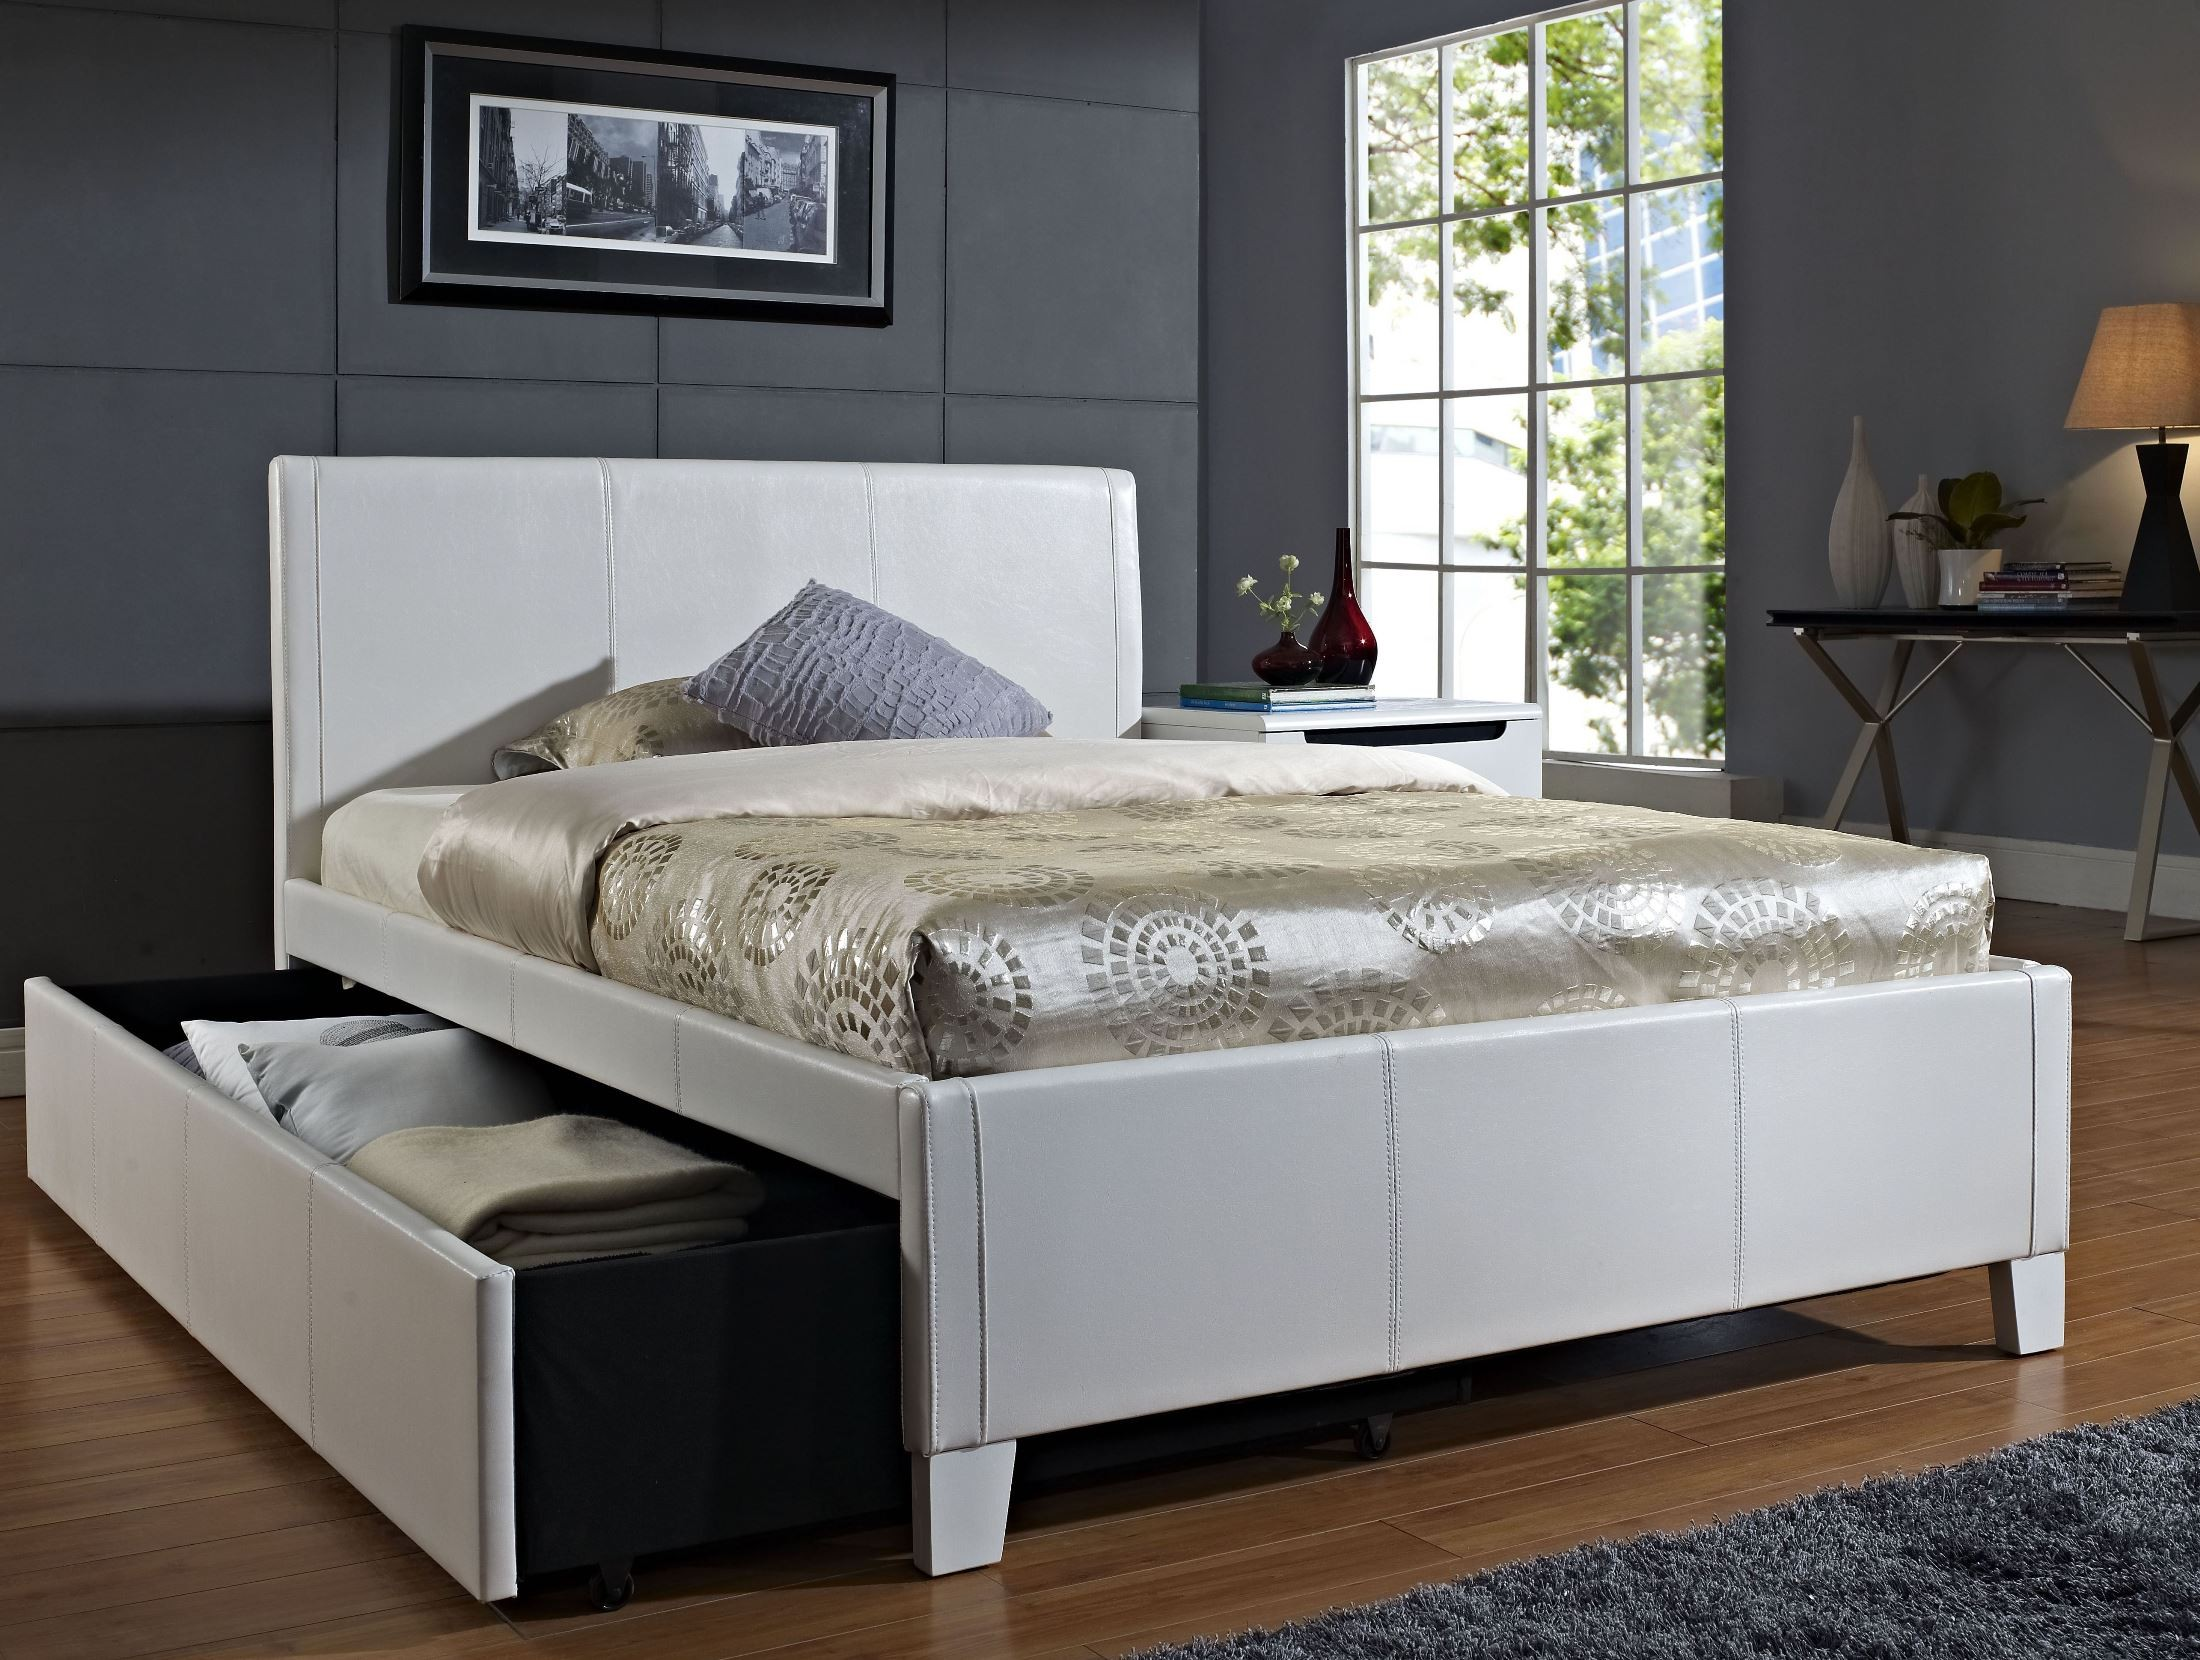 Fantasia White Full Upholstered Trundle Bed From Standard